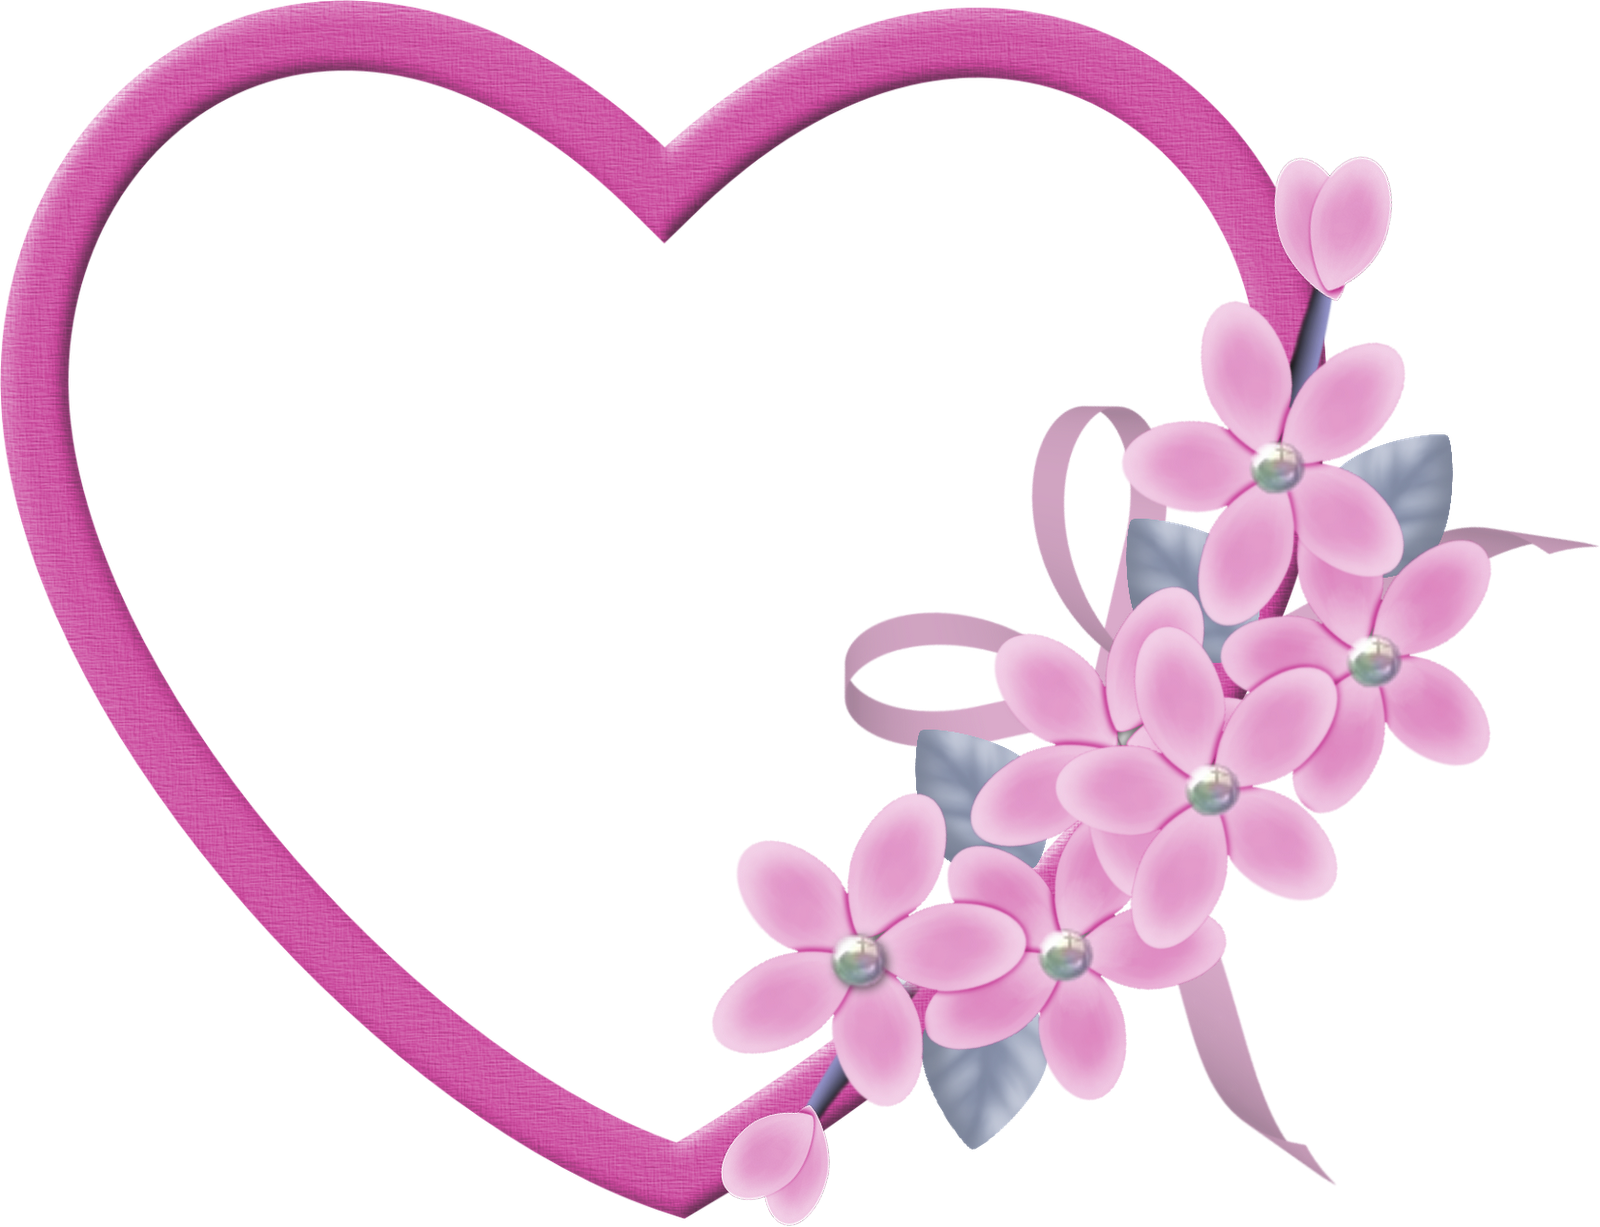 Large pink heart transparent. Clipart hearts flower